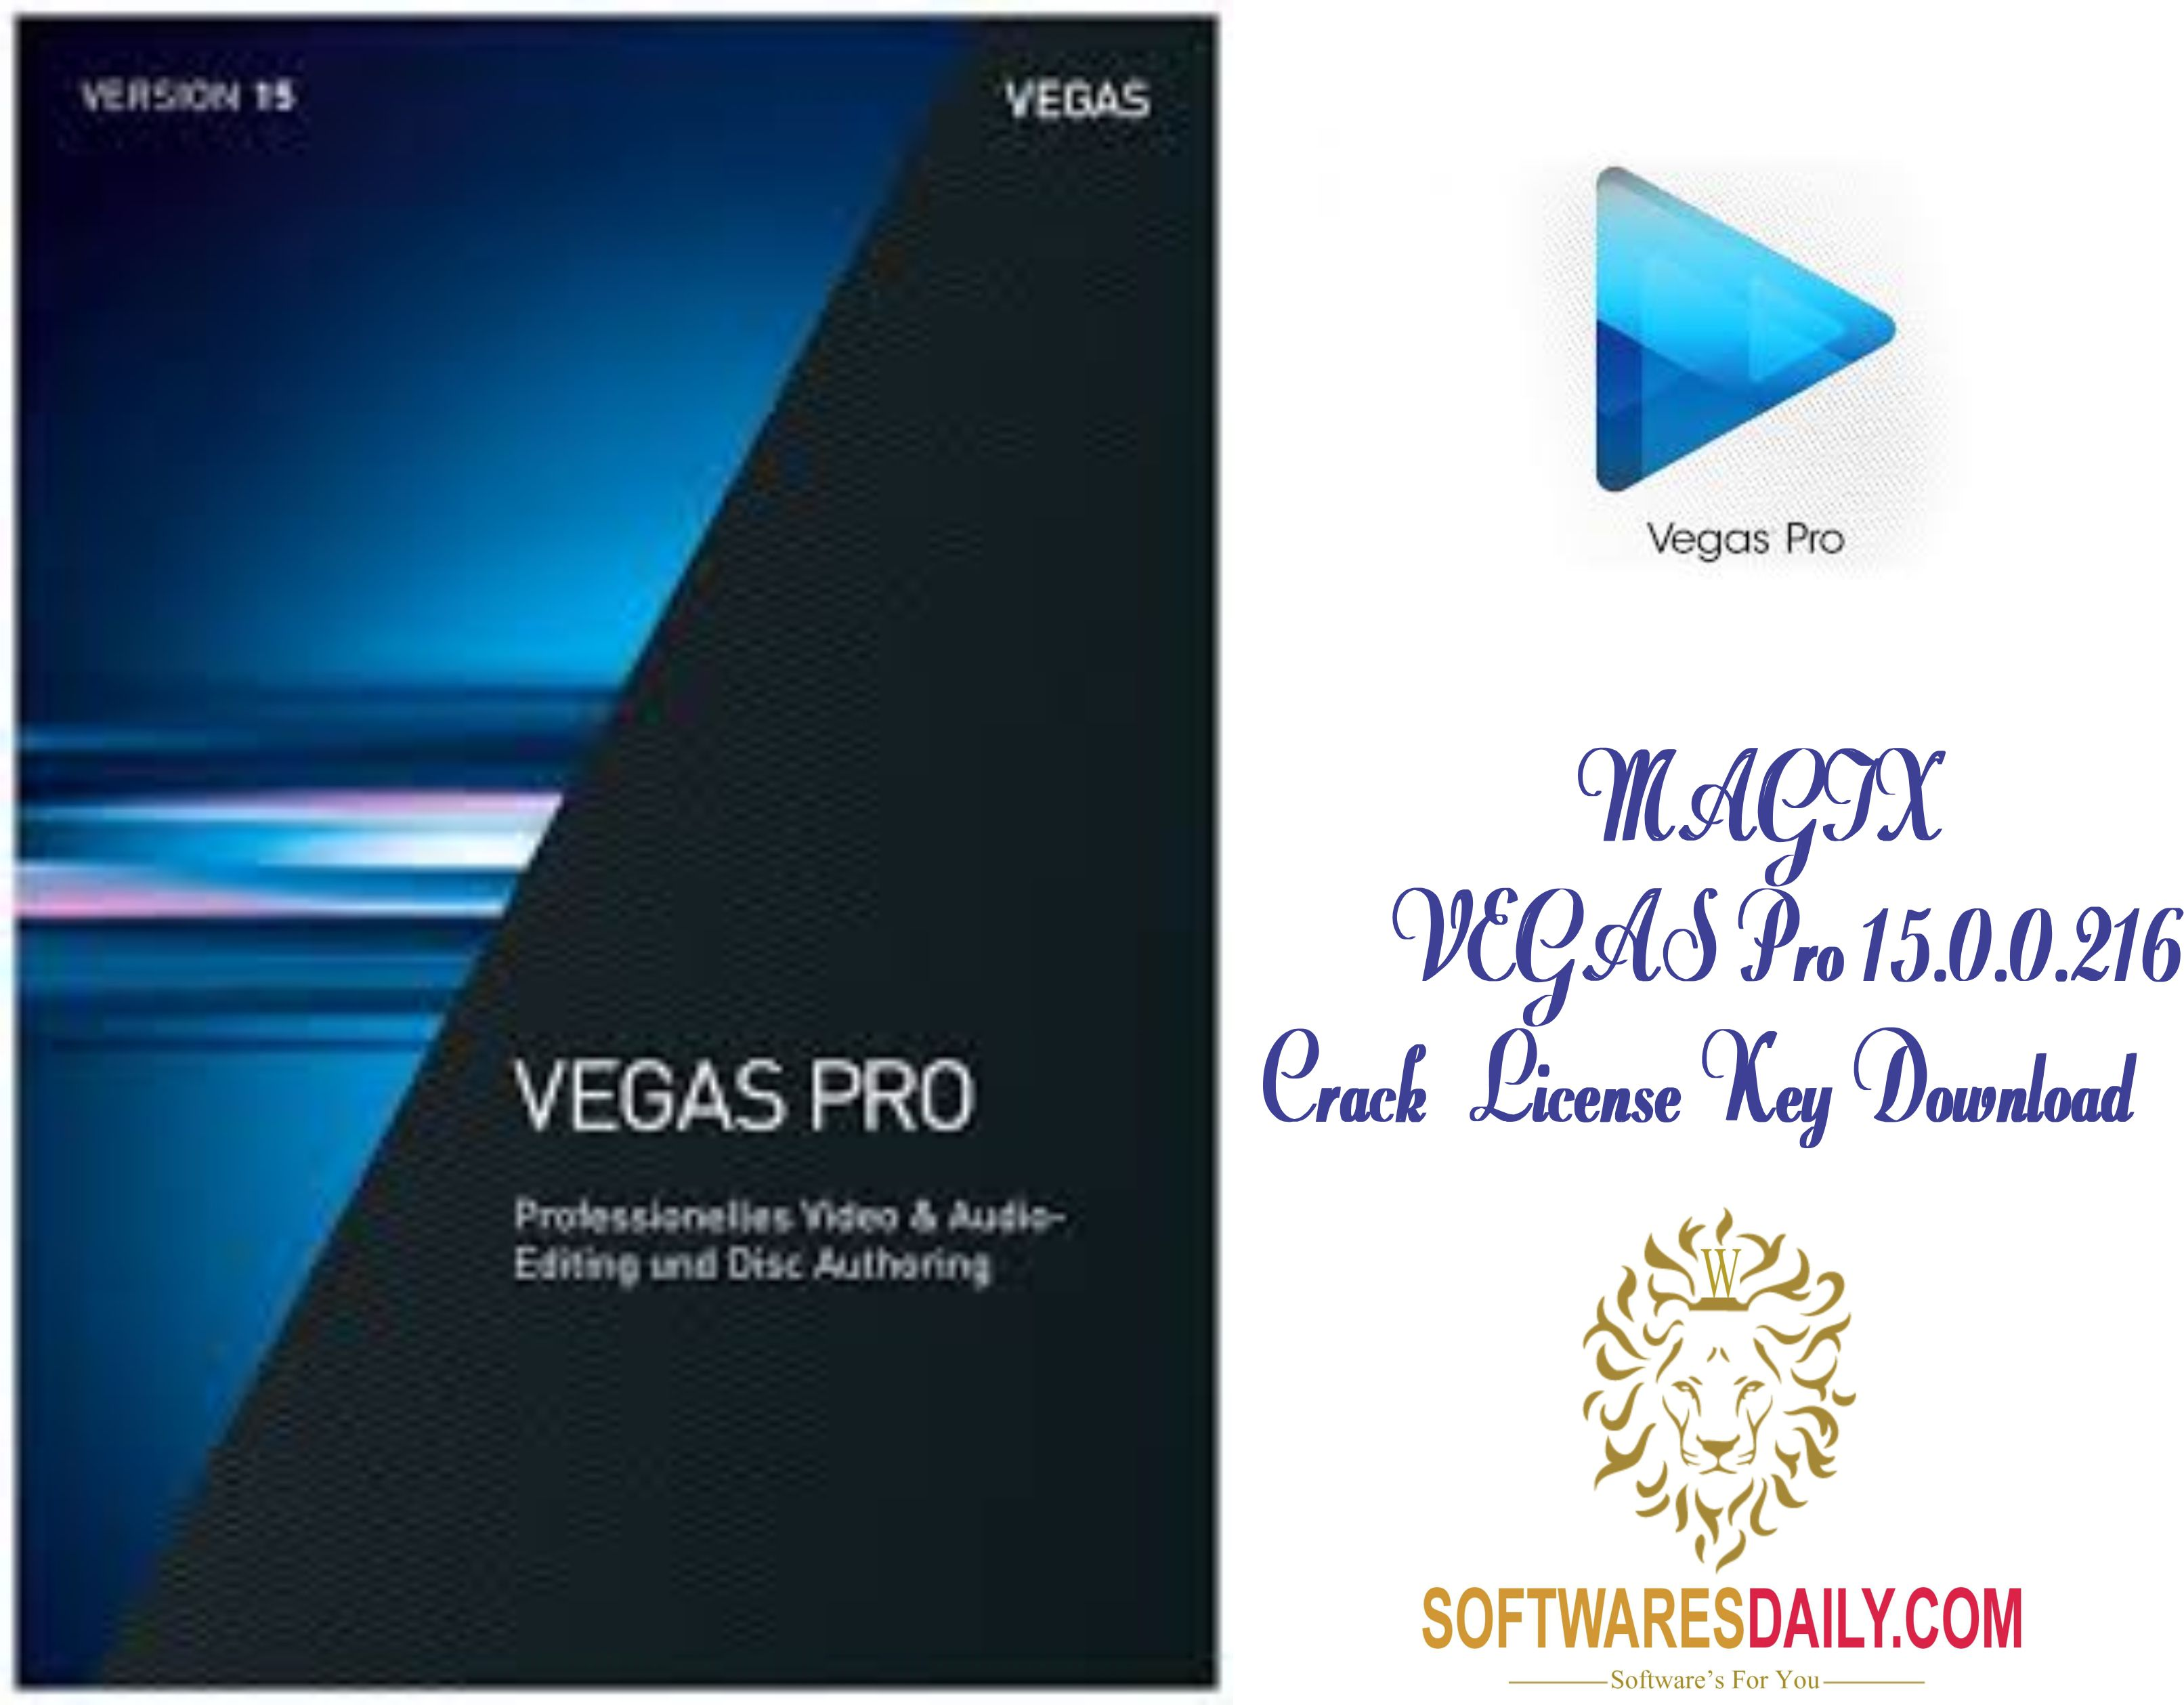 MAGIX VEGAS Pro 15 0 0 416 license key